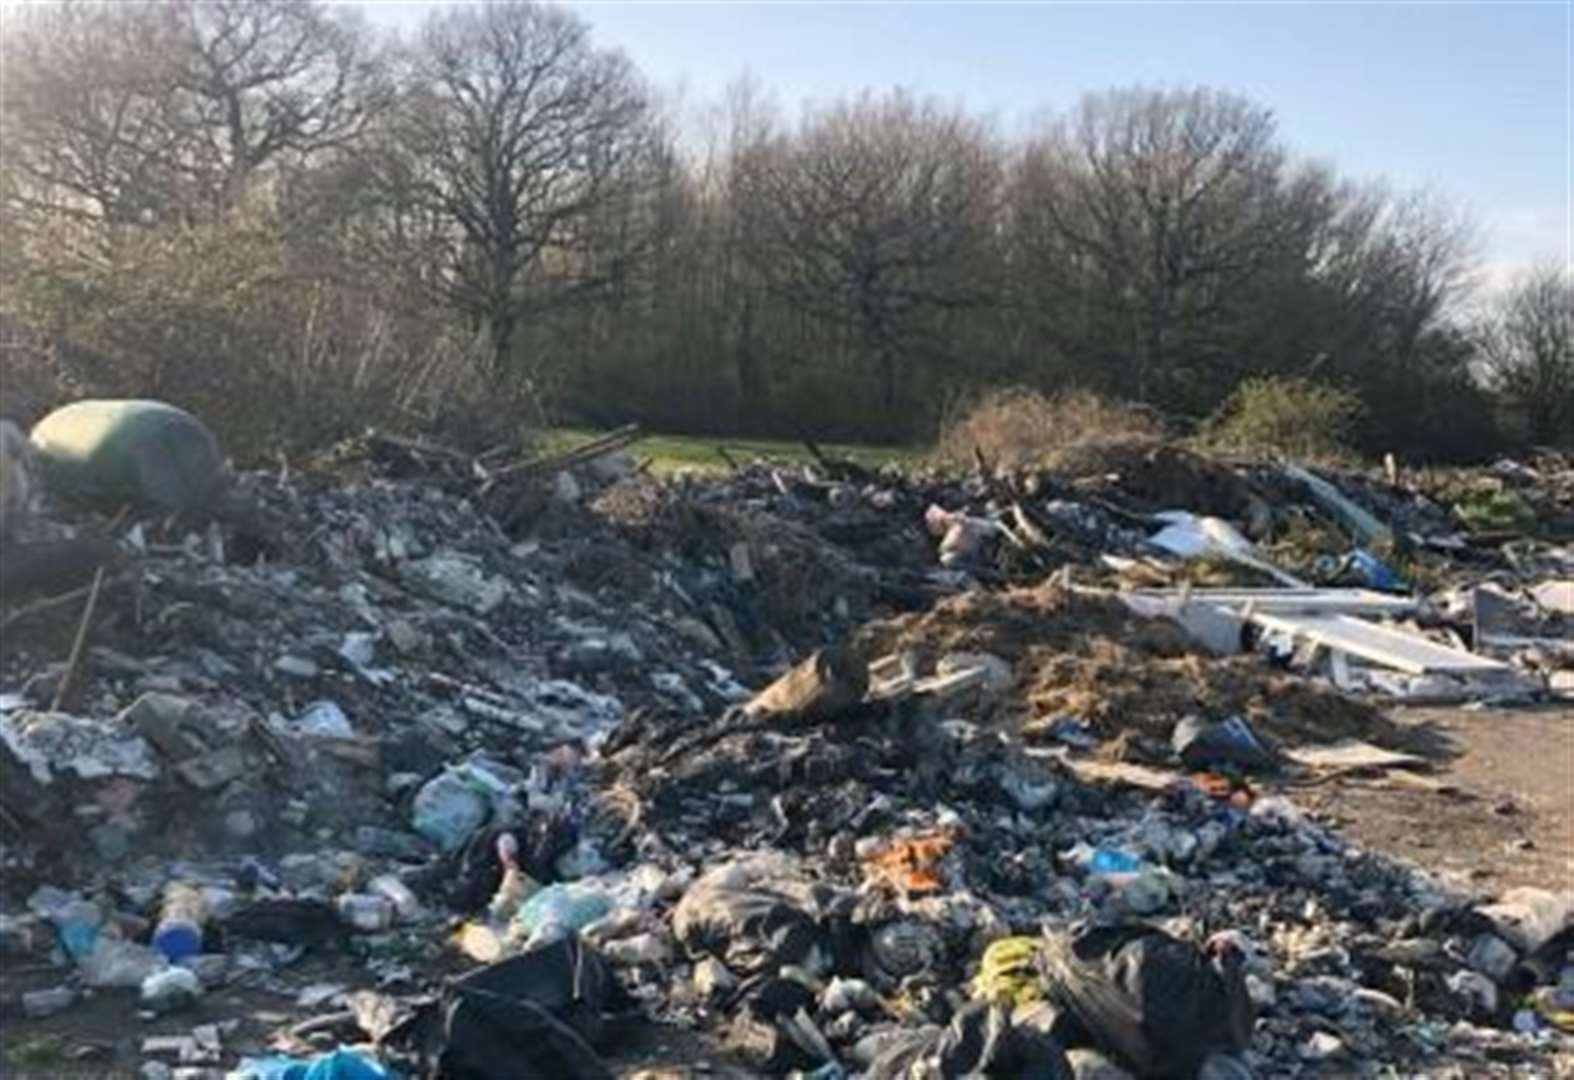 Fly-tipping clean up delayed due to 'nesting birds'